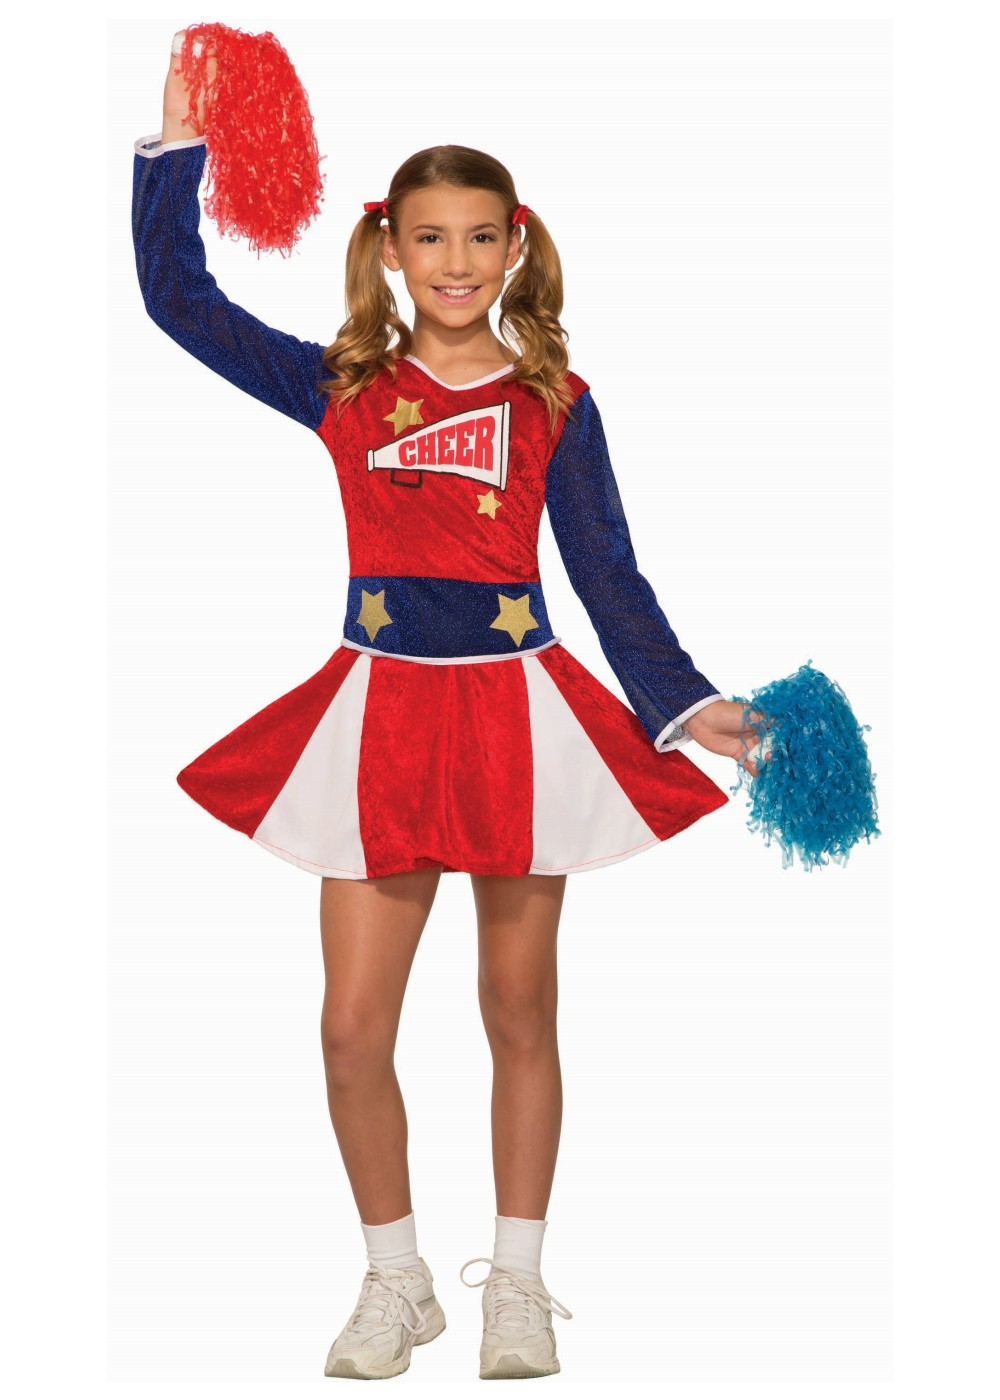 Kids Cheerleader Girls Costume